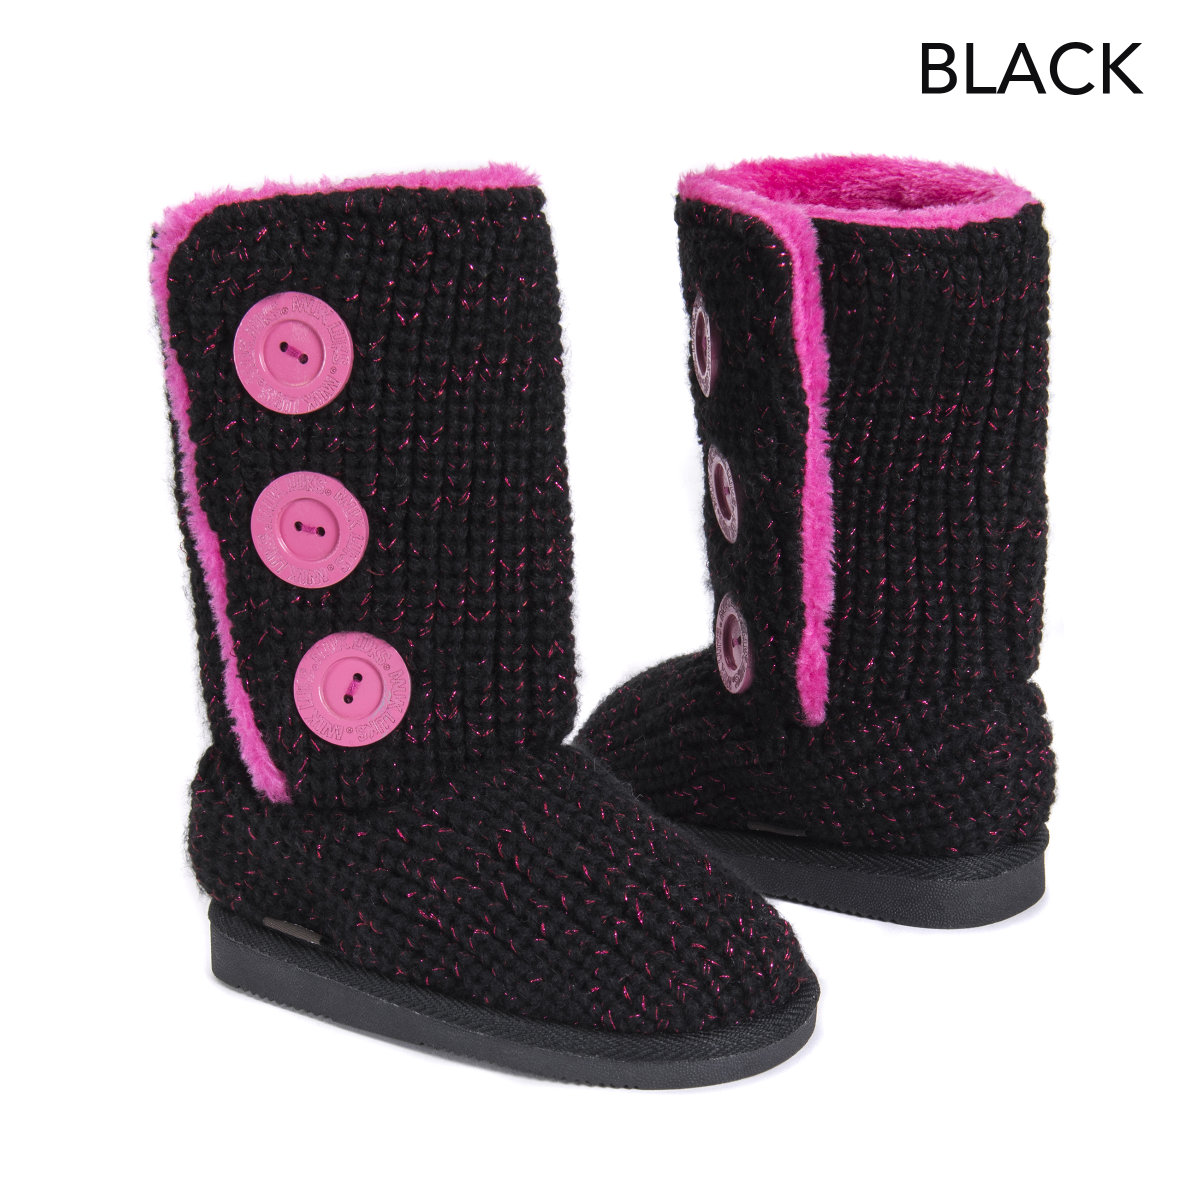 6177aad9d130 Jane is offering a great price on the MUK LUKS ® Girl s Malena Boots at  just  17.99 (reg  48) + FREE Shipping! I have read that these boots run on  the ...